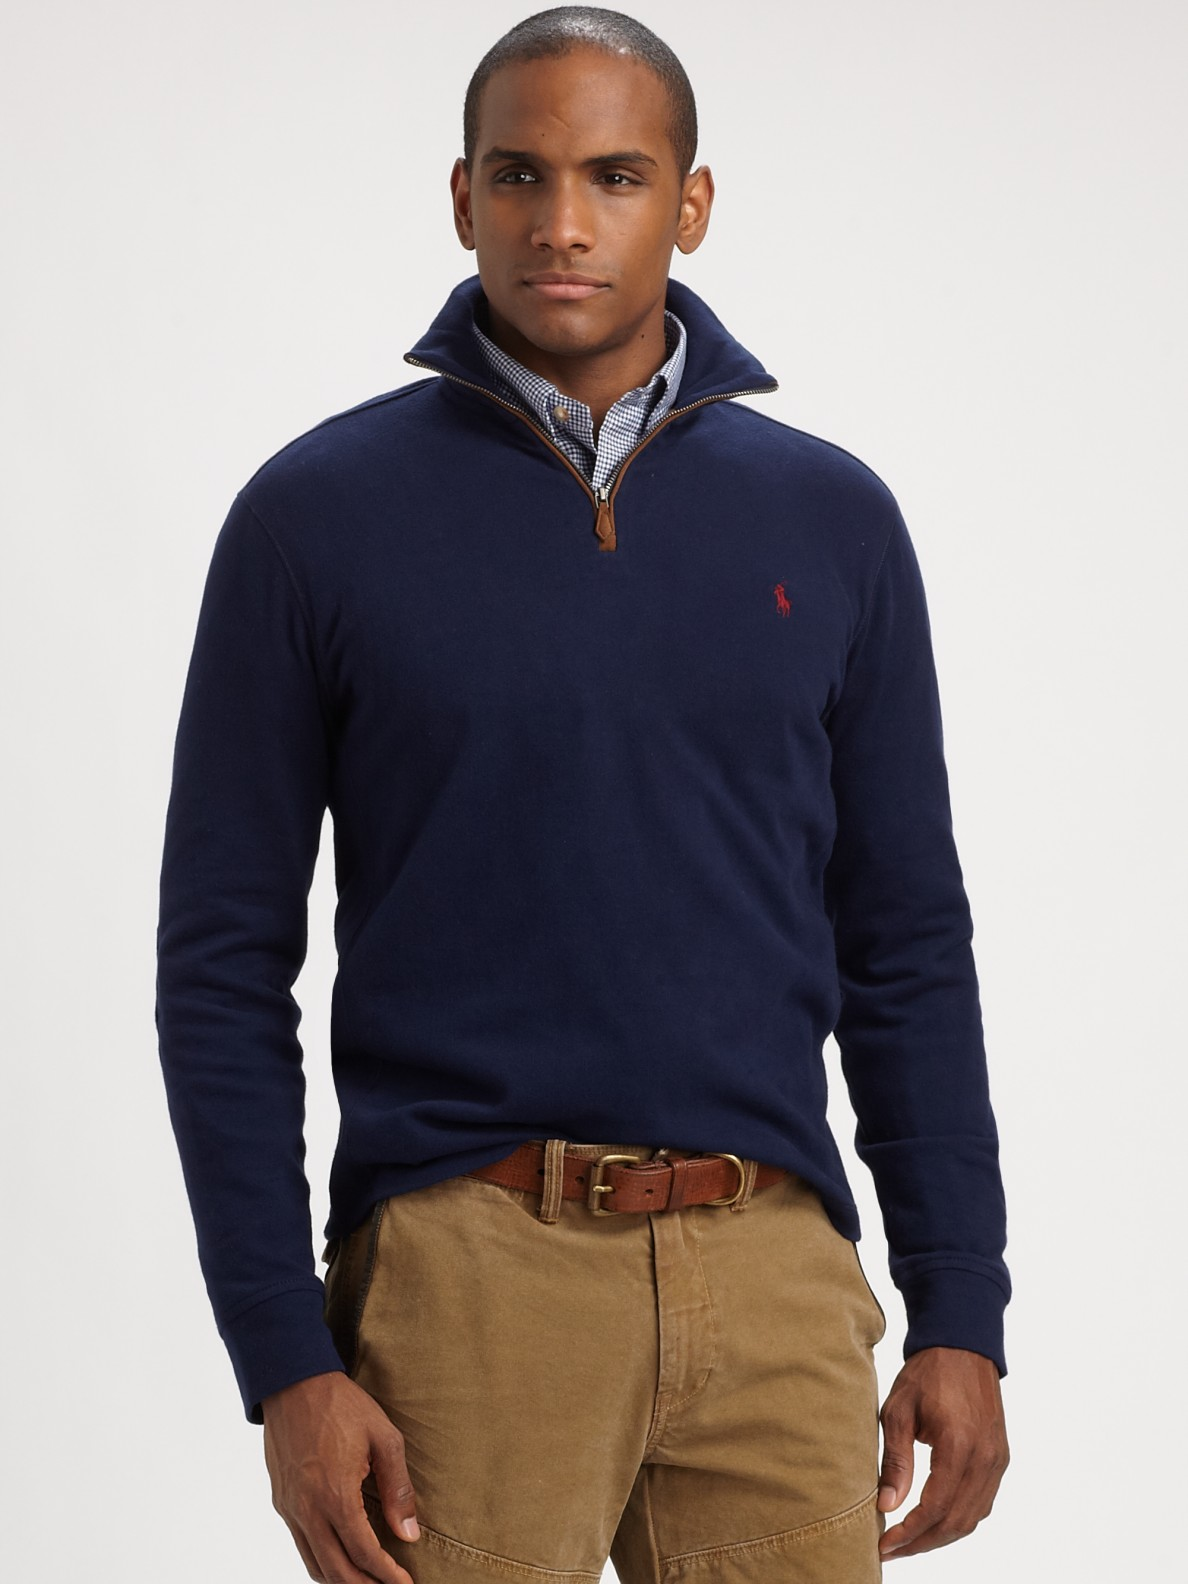 polo ralph lauren blue sueded jersey halfzip pullover for men lyst. Black Bedroom Furniture Sets. Home Design Ideas